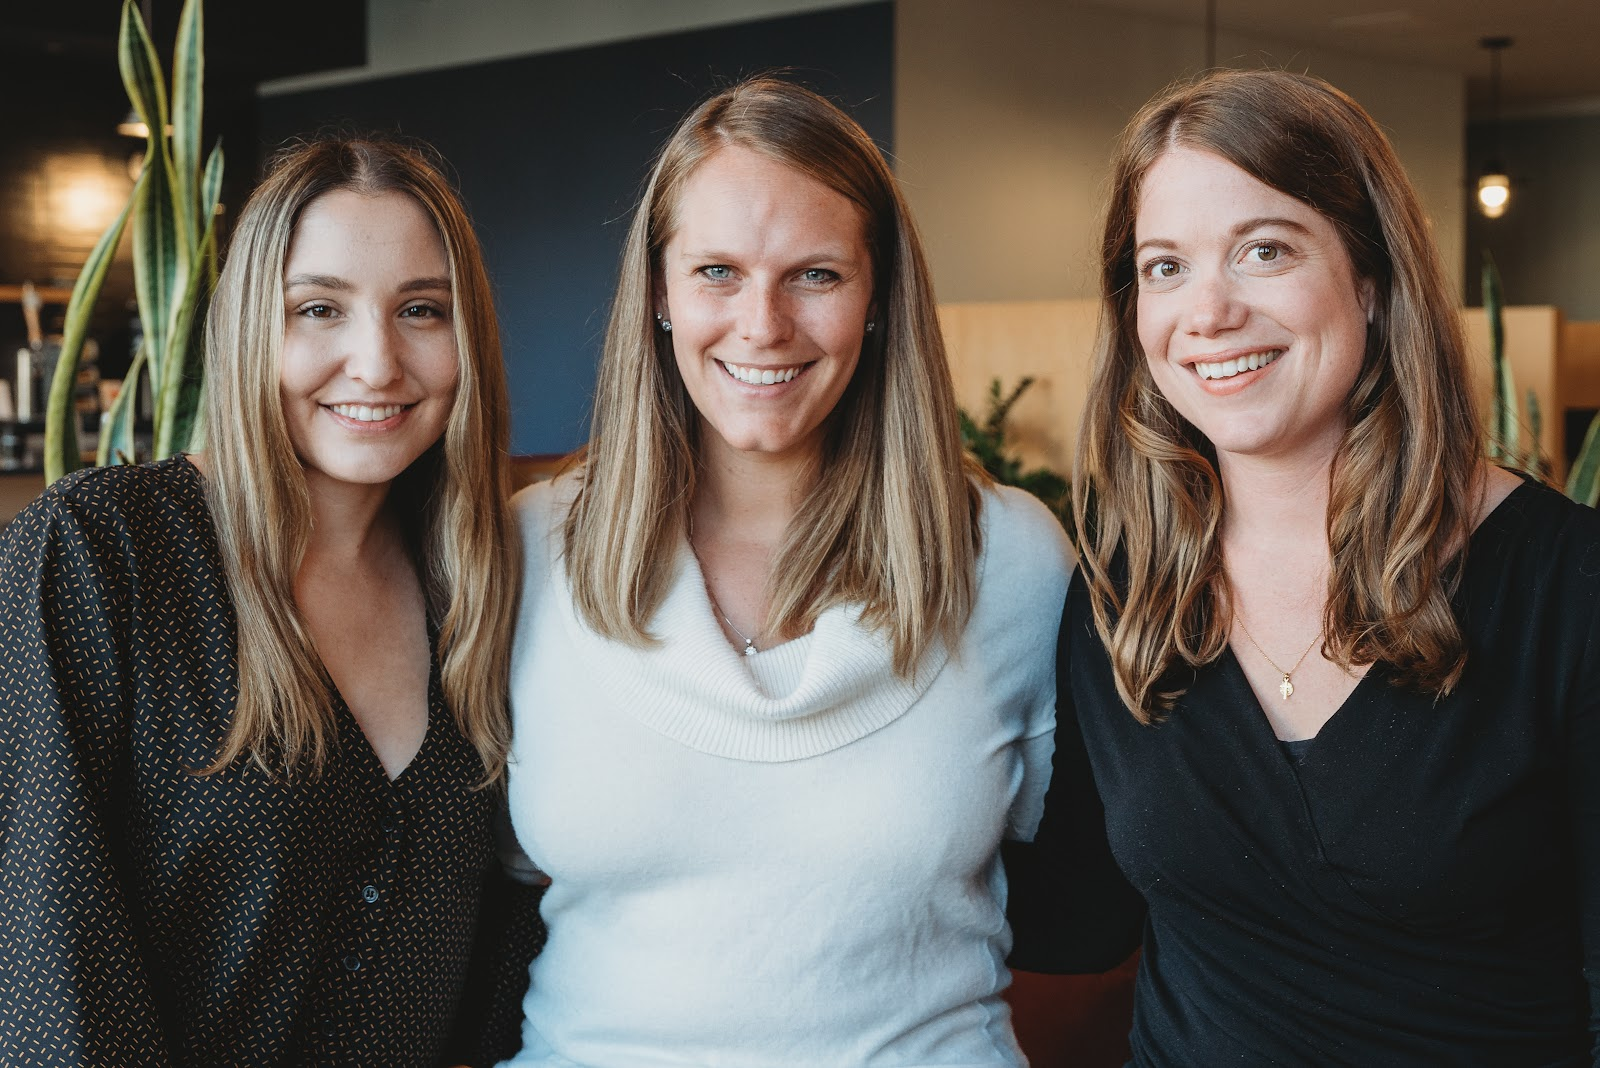 From left: Head engineer Angela Murrell with founders Elle Hempen and Ellory Monks